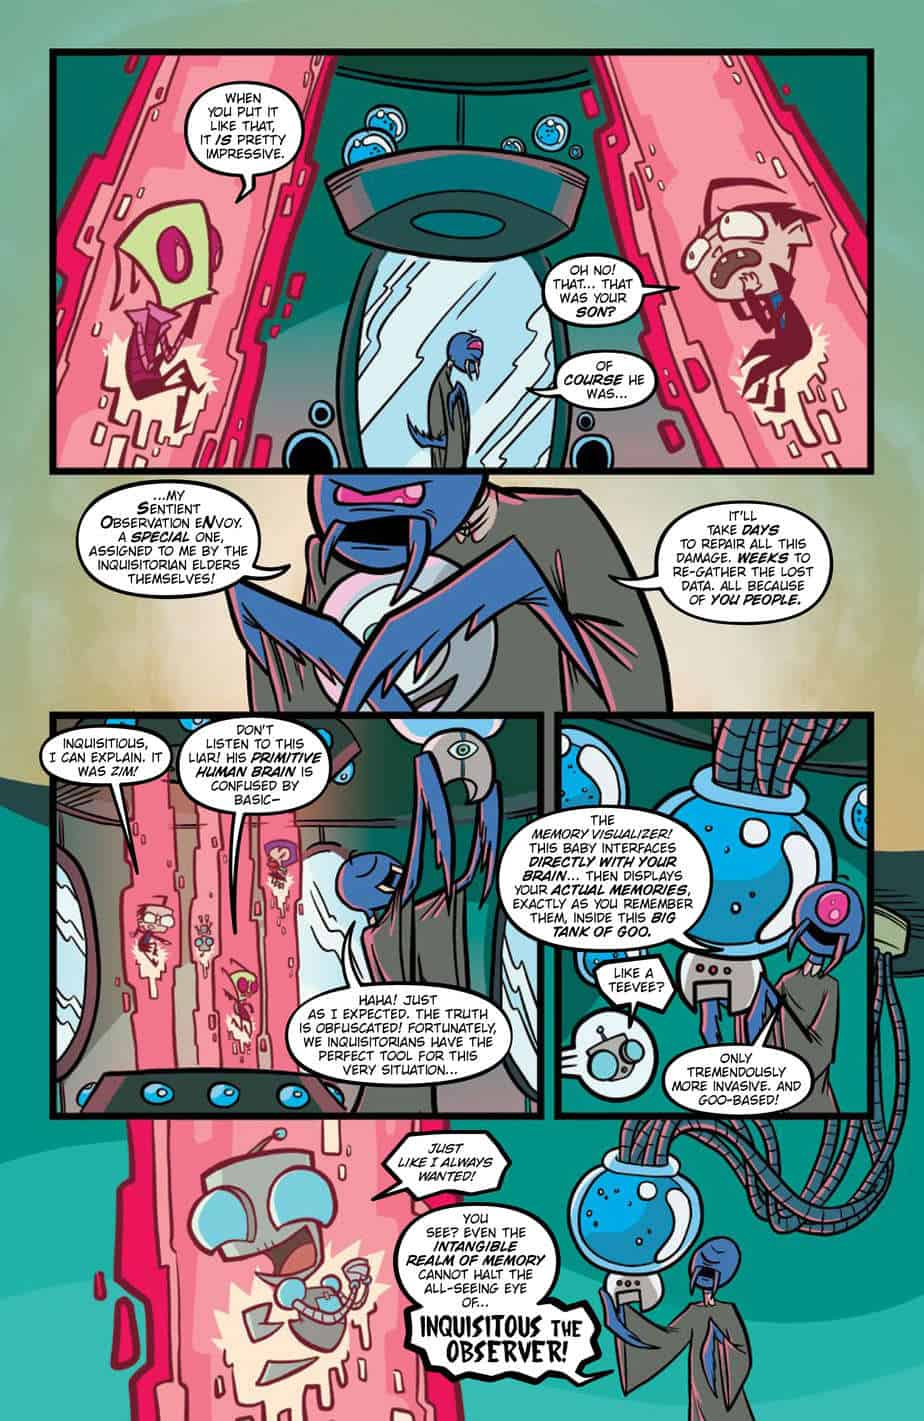 Preview-Pages-from-INVADERZIM-#39-REFERENCE-6